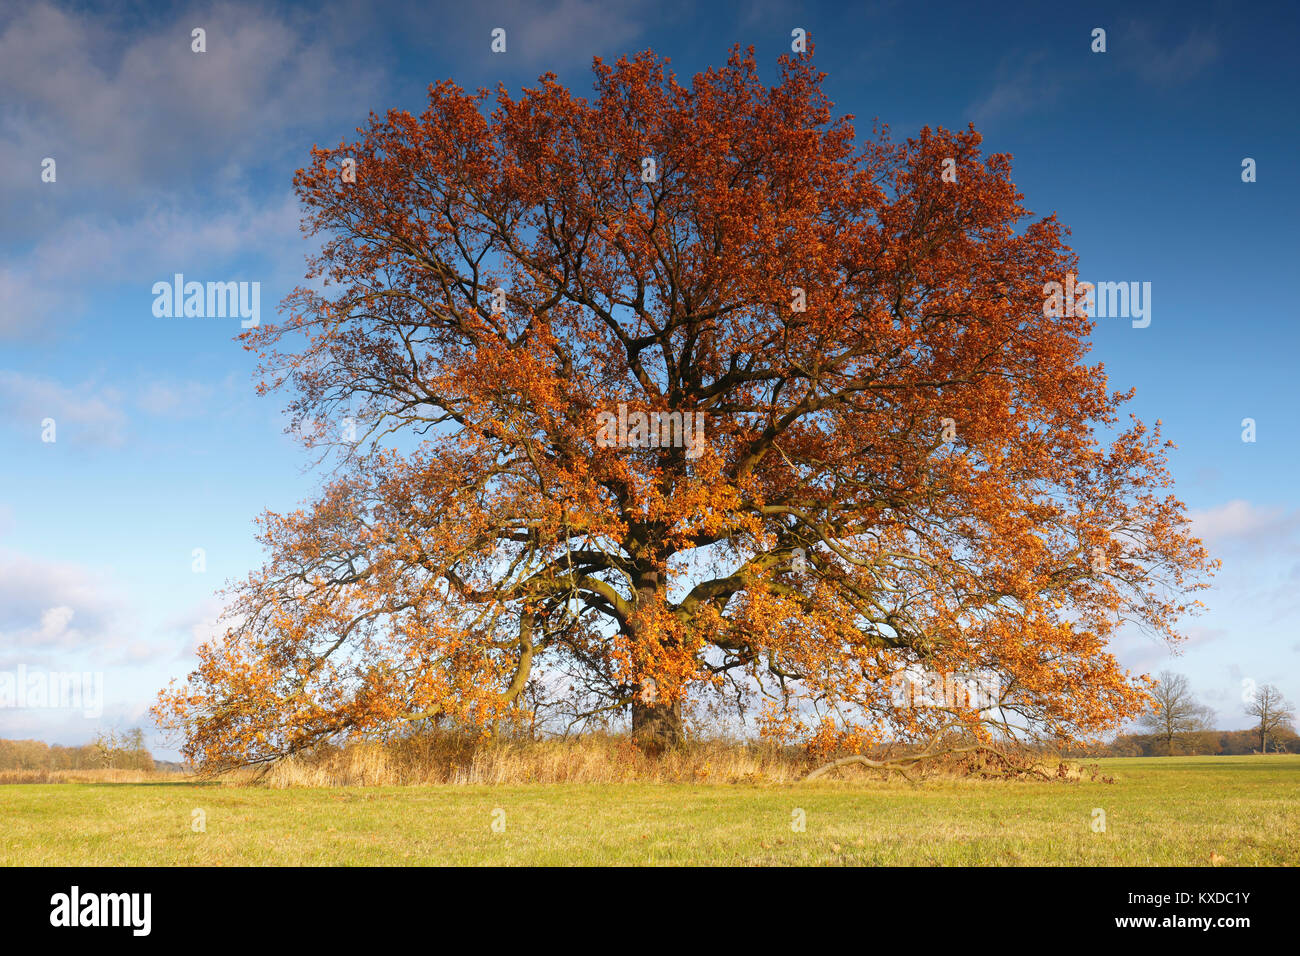 Oak (Quercus), solitary tree in autumn on floodplain meadow, Biosphere Reserve Middle Elbe, Saxony-Anhalt, Germany - Stock Image